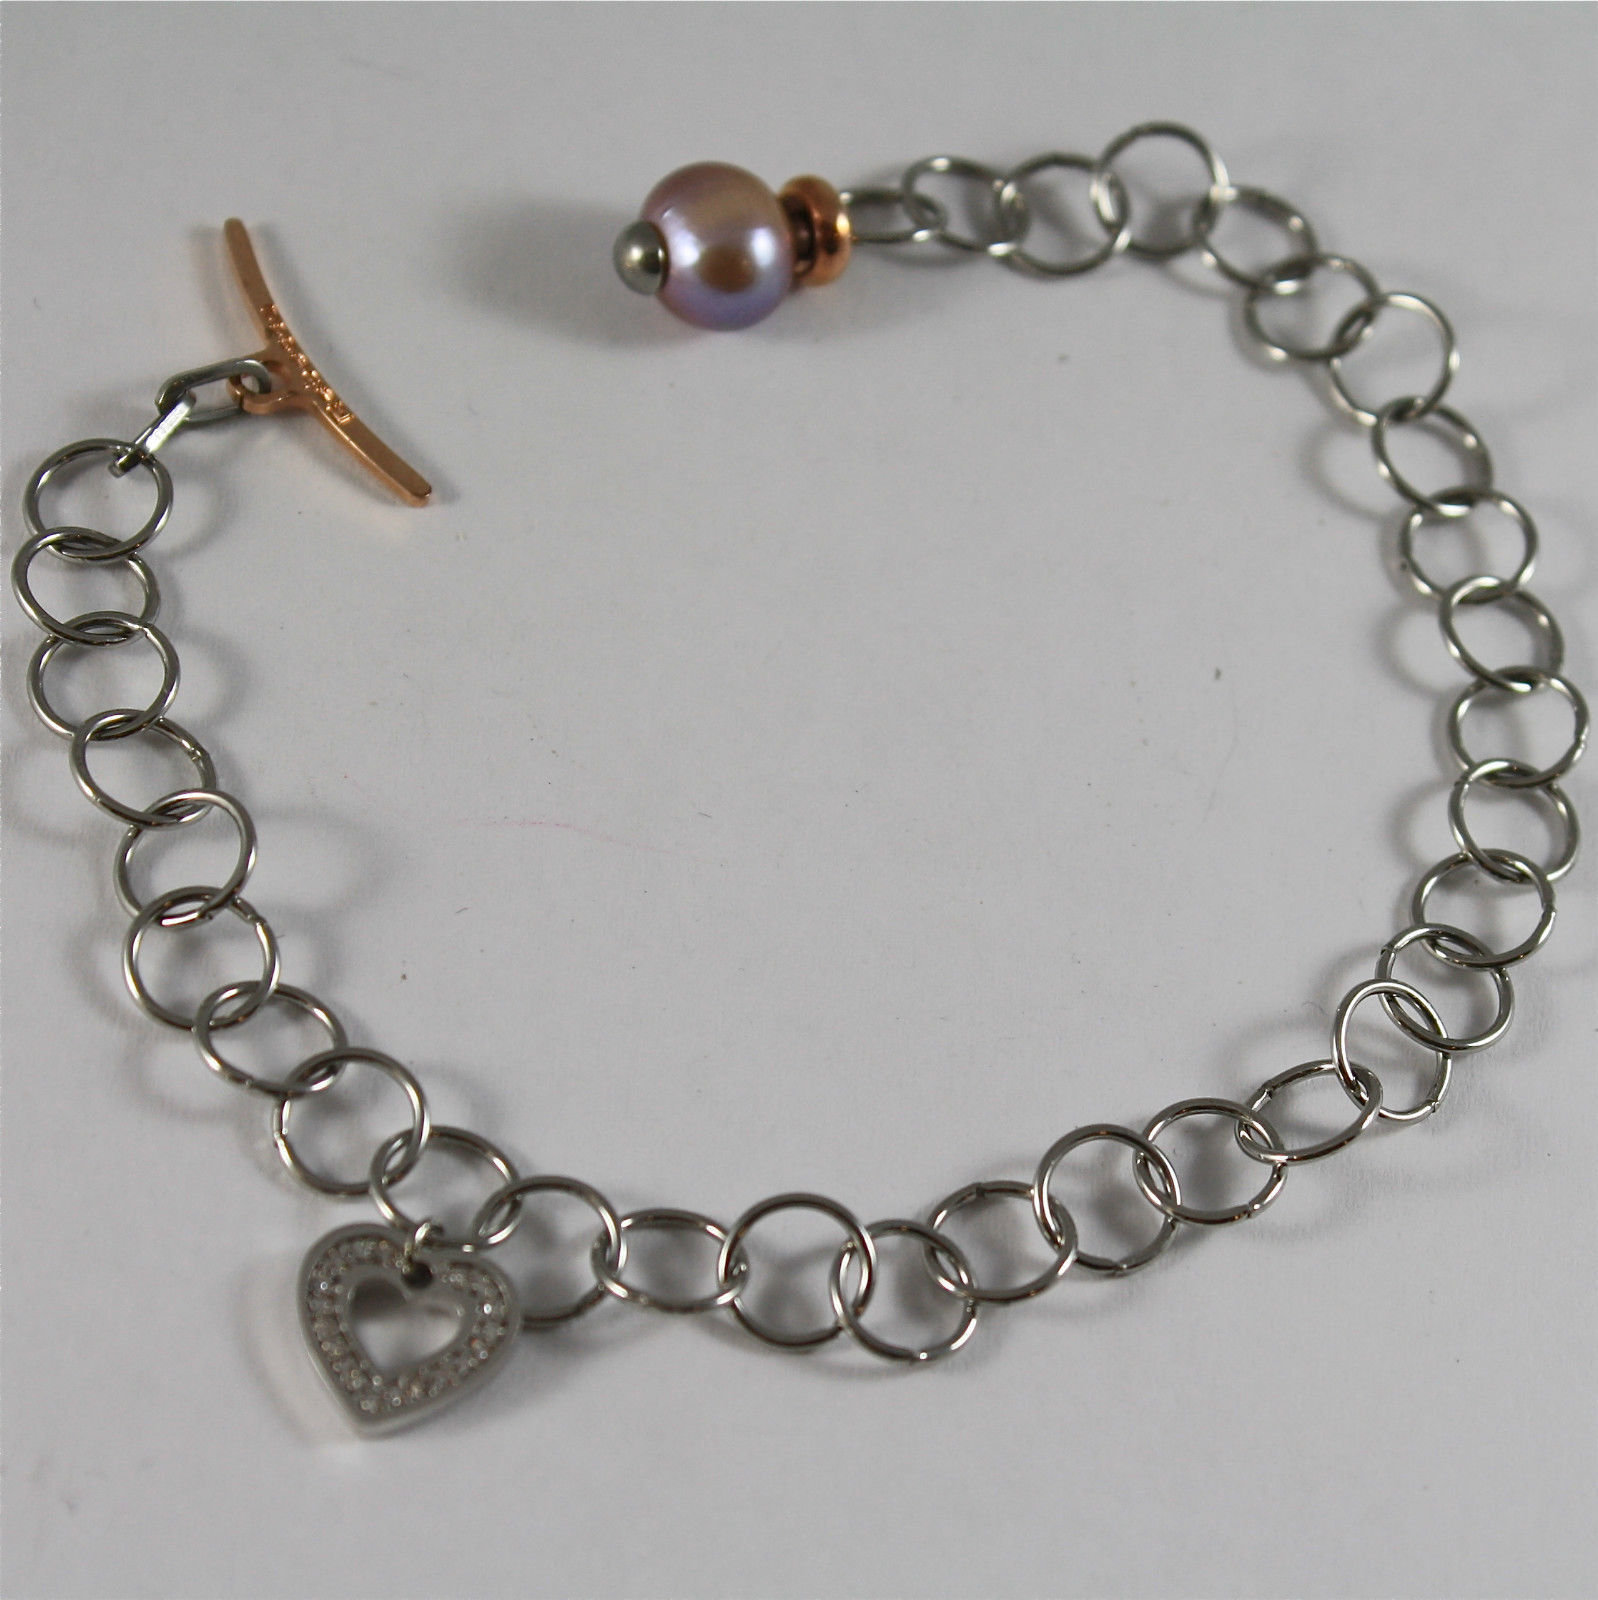 RHODIUM-PL​ATED BRONZE BRACELET WITH CHARMS AND PEARL BY REBECCA MADE IN ITALY